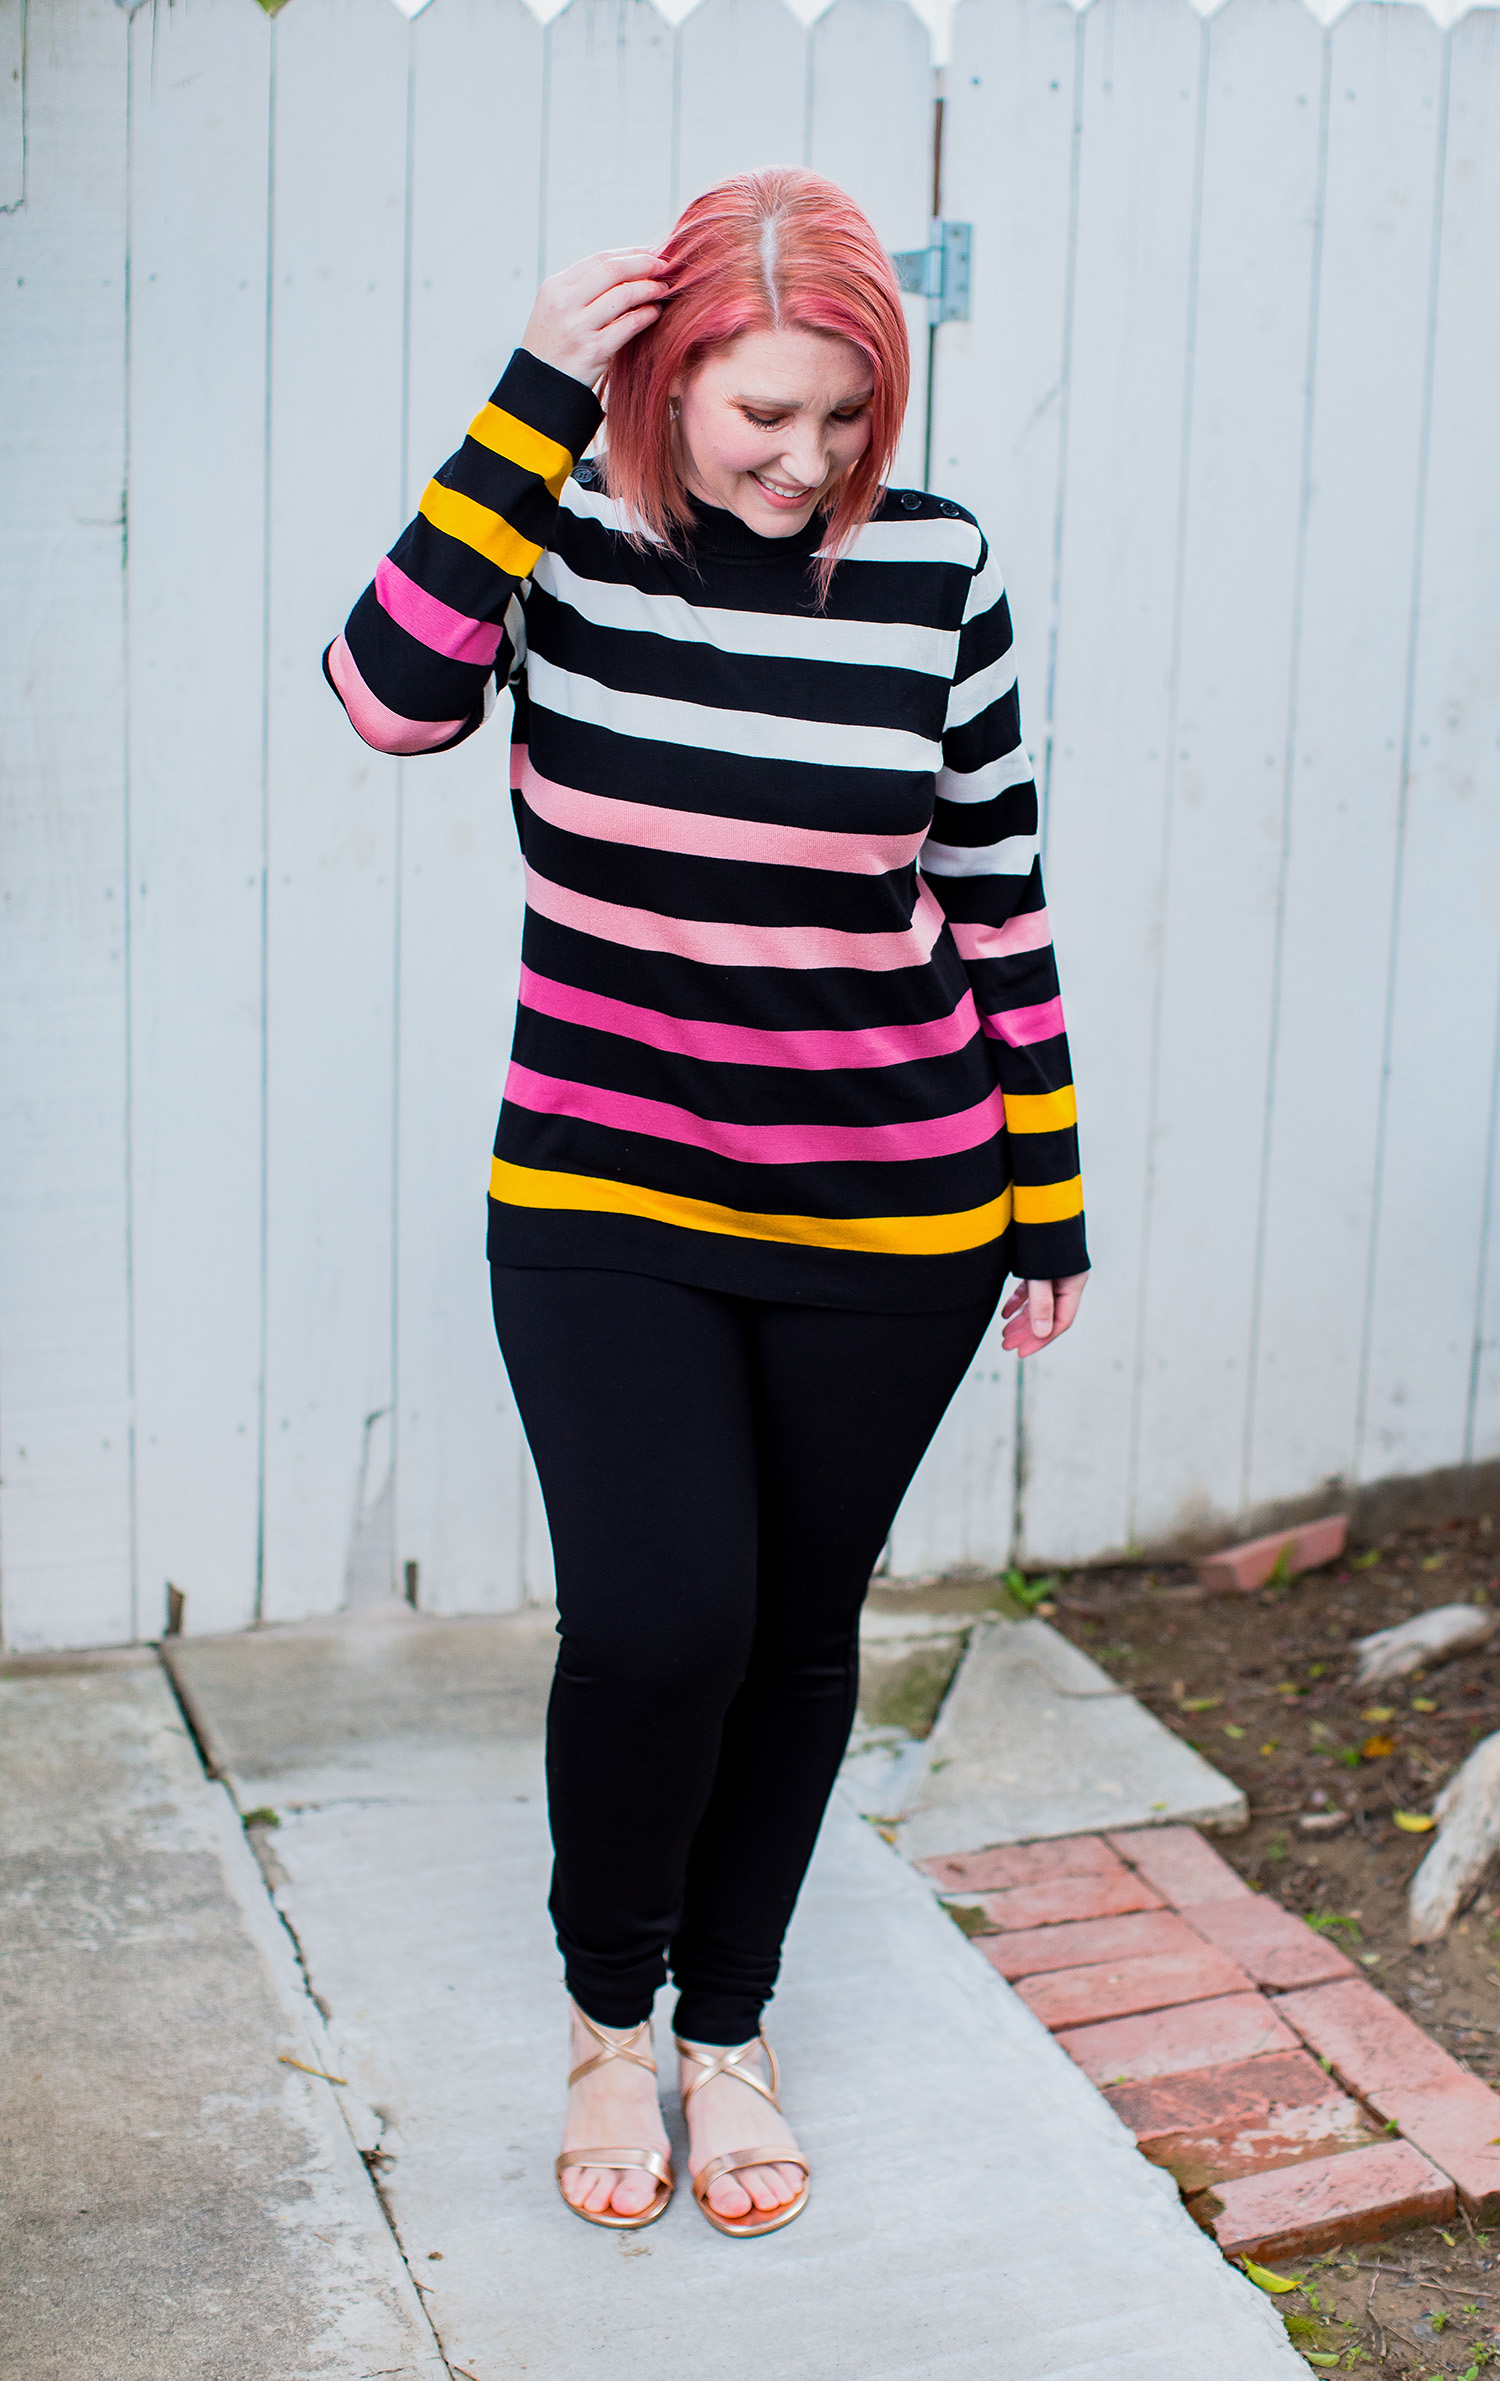 Little Black Pant ALERT: If you're looking for great black pants for a pear shaped body, these Liverpool Jacqueline Skinny Pants fit like a dream!  They're part of the Stitch Fix Review March 2019 over on Lipgloss and Crayons!